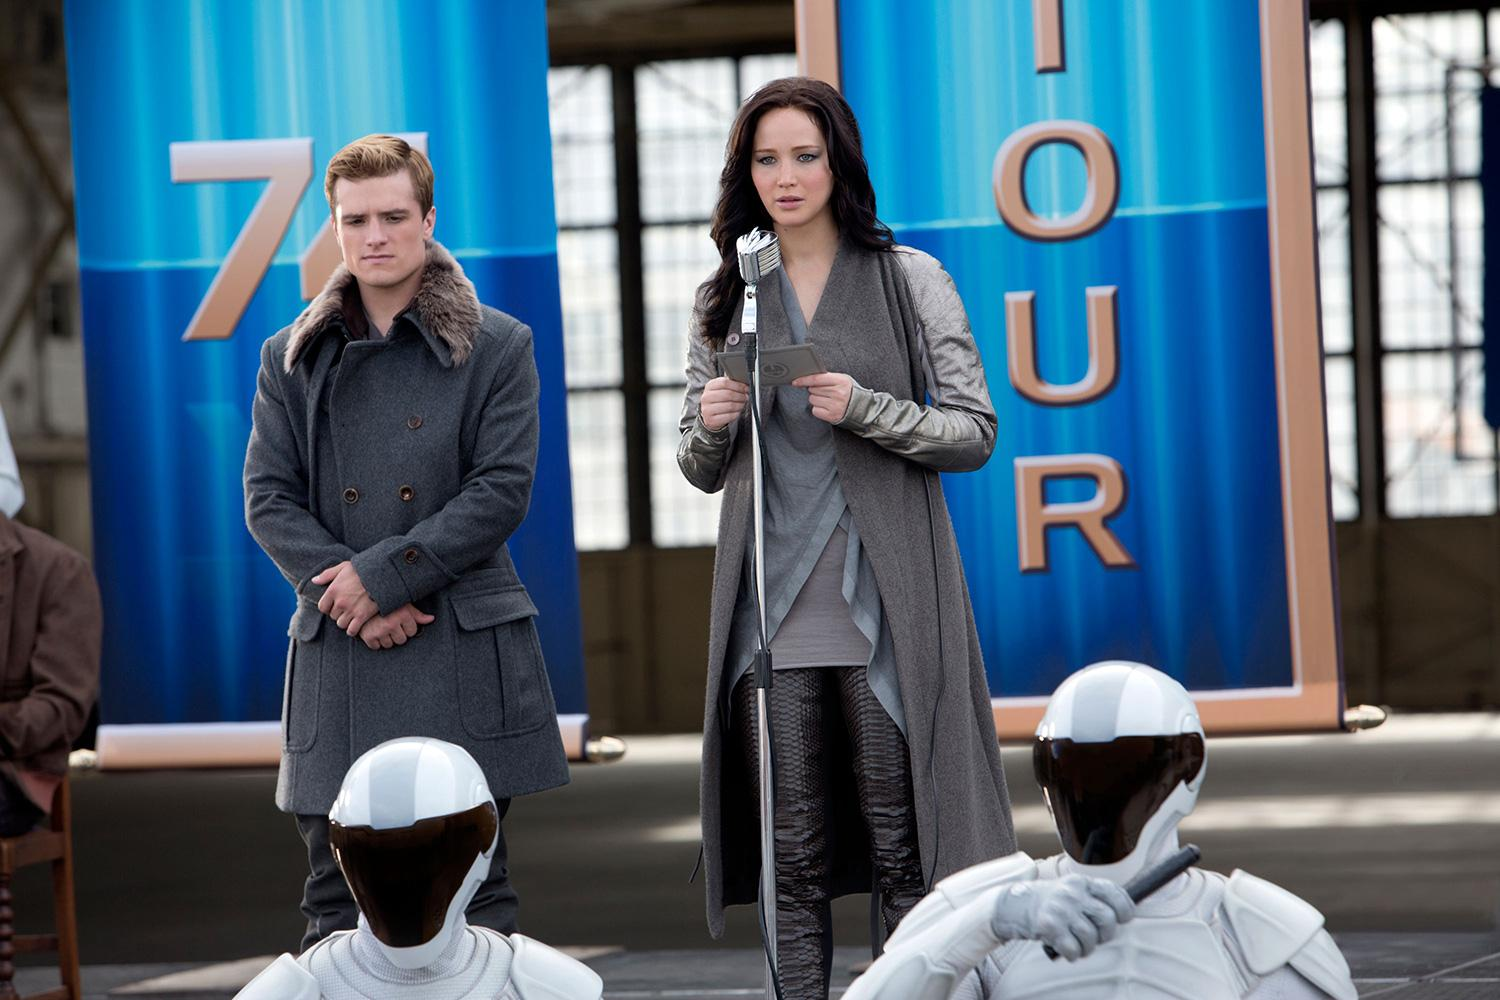 The Hunger Games Excerpt - Katniss' Catching Fire Interview - YouTube